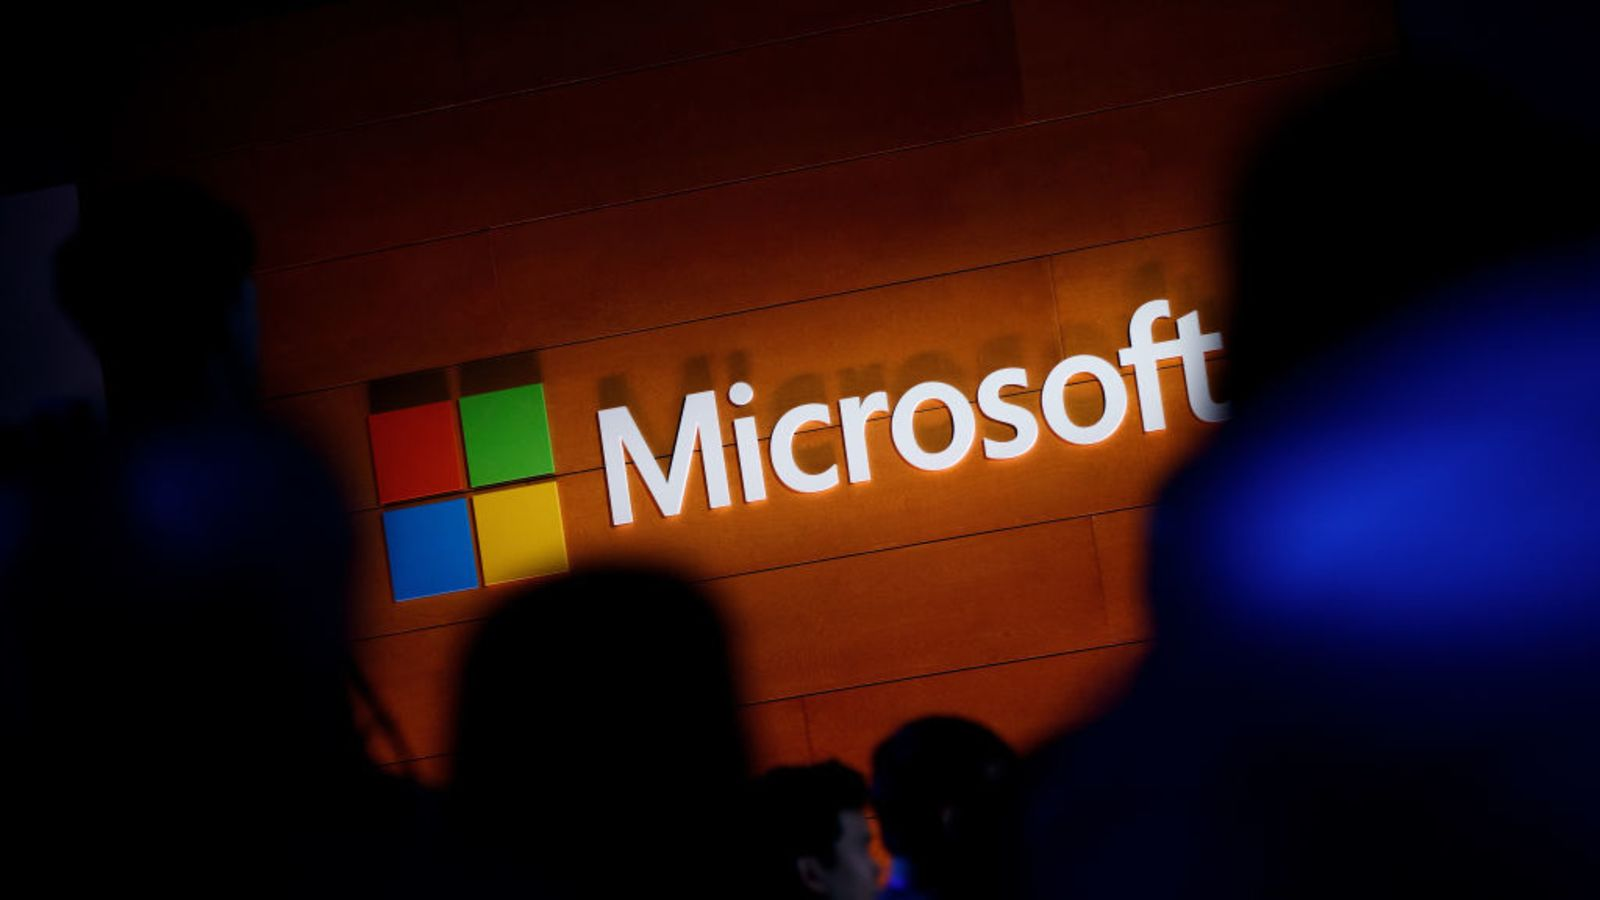 The US immigration policies now forcing companies like Microsoft to move jobs abroad